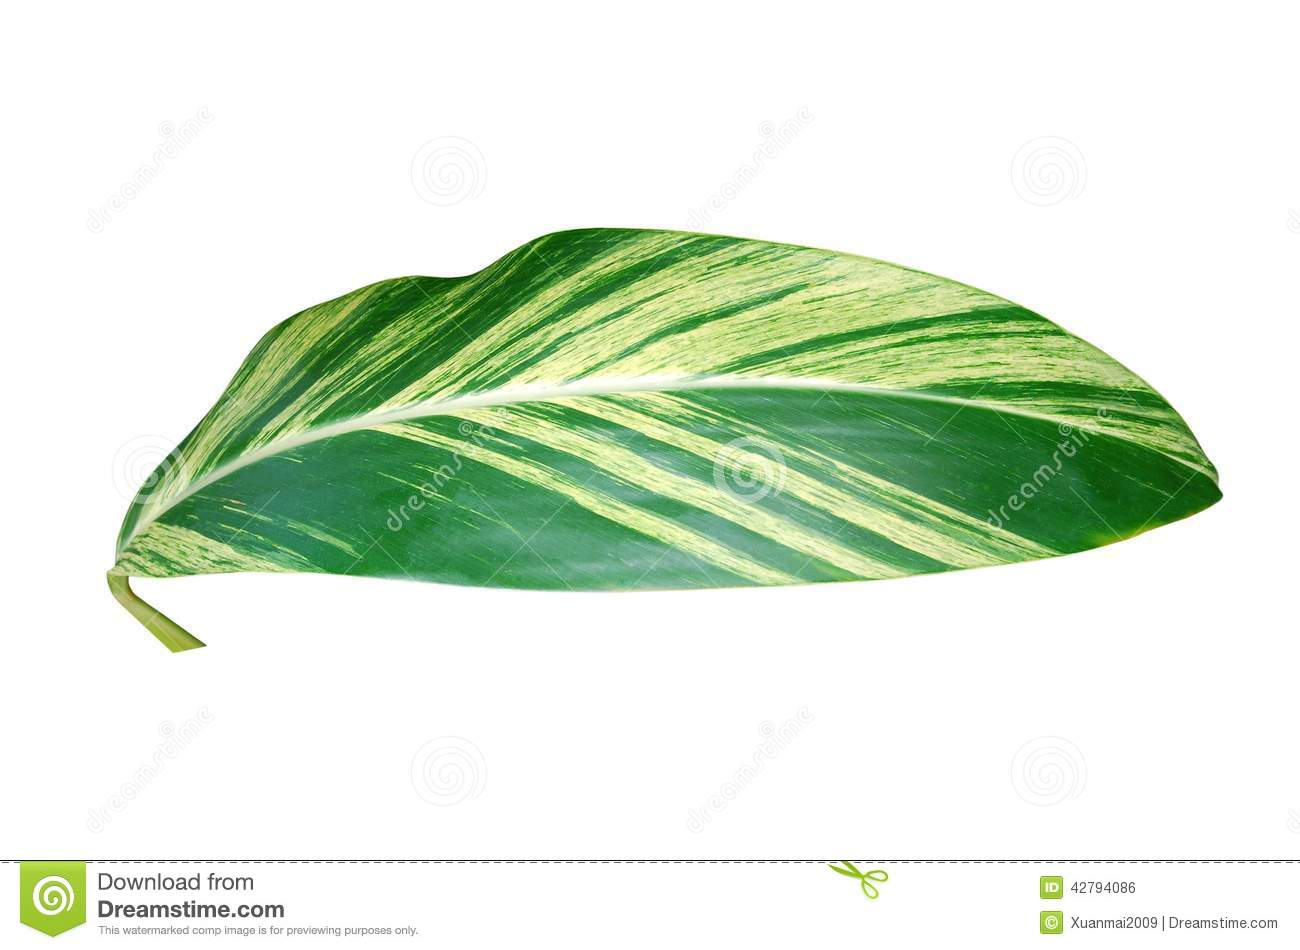 Feuille de plante dintrieur verte photo stock image 42794086 feuille de plante d intrieur verte altavistaventures Image collections